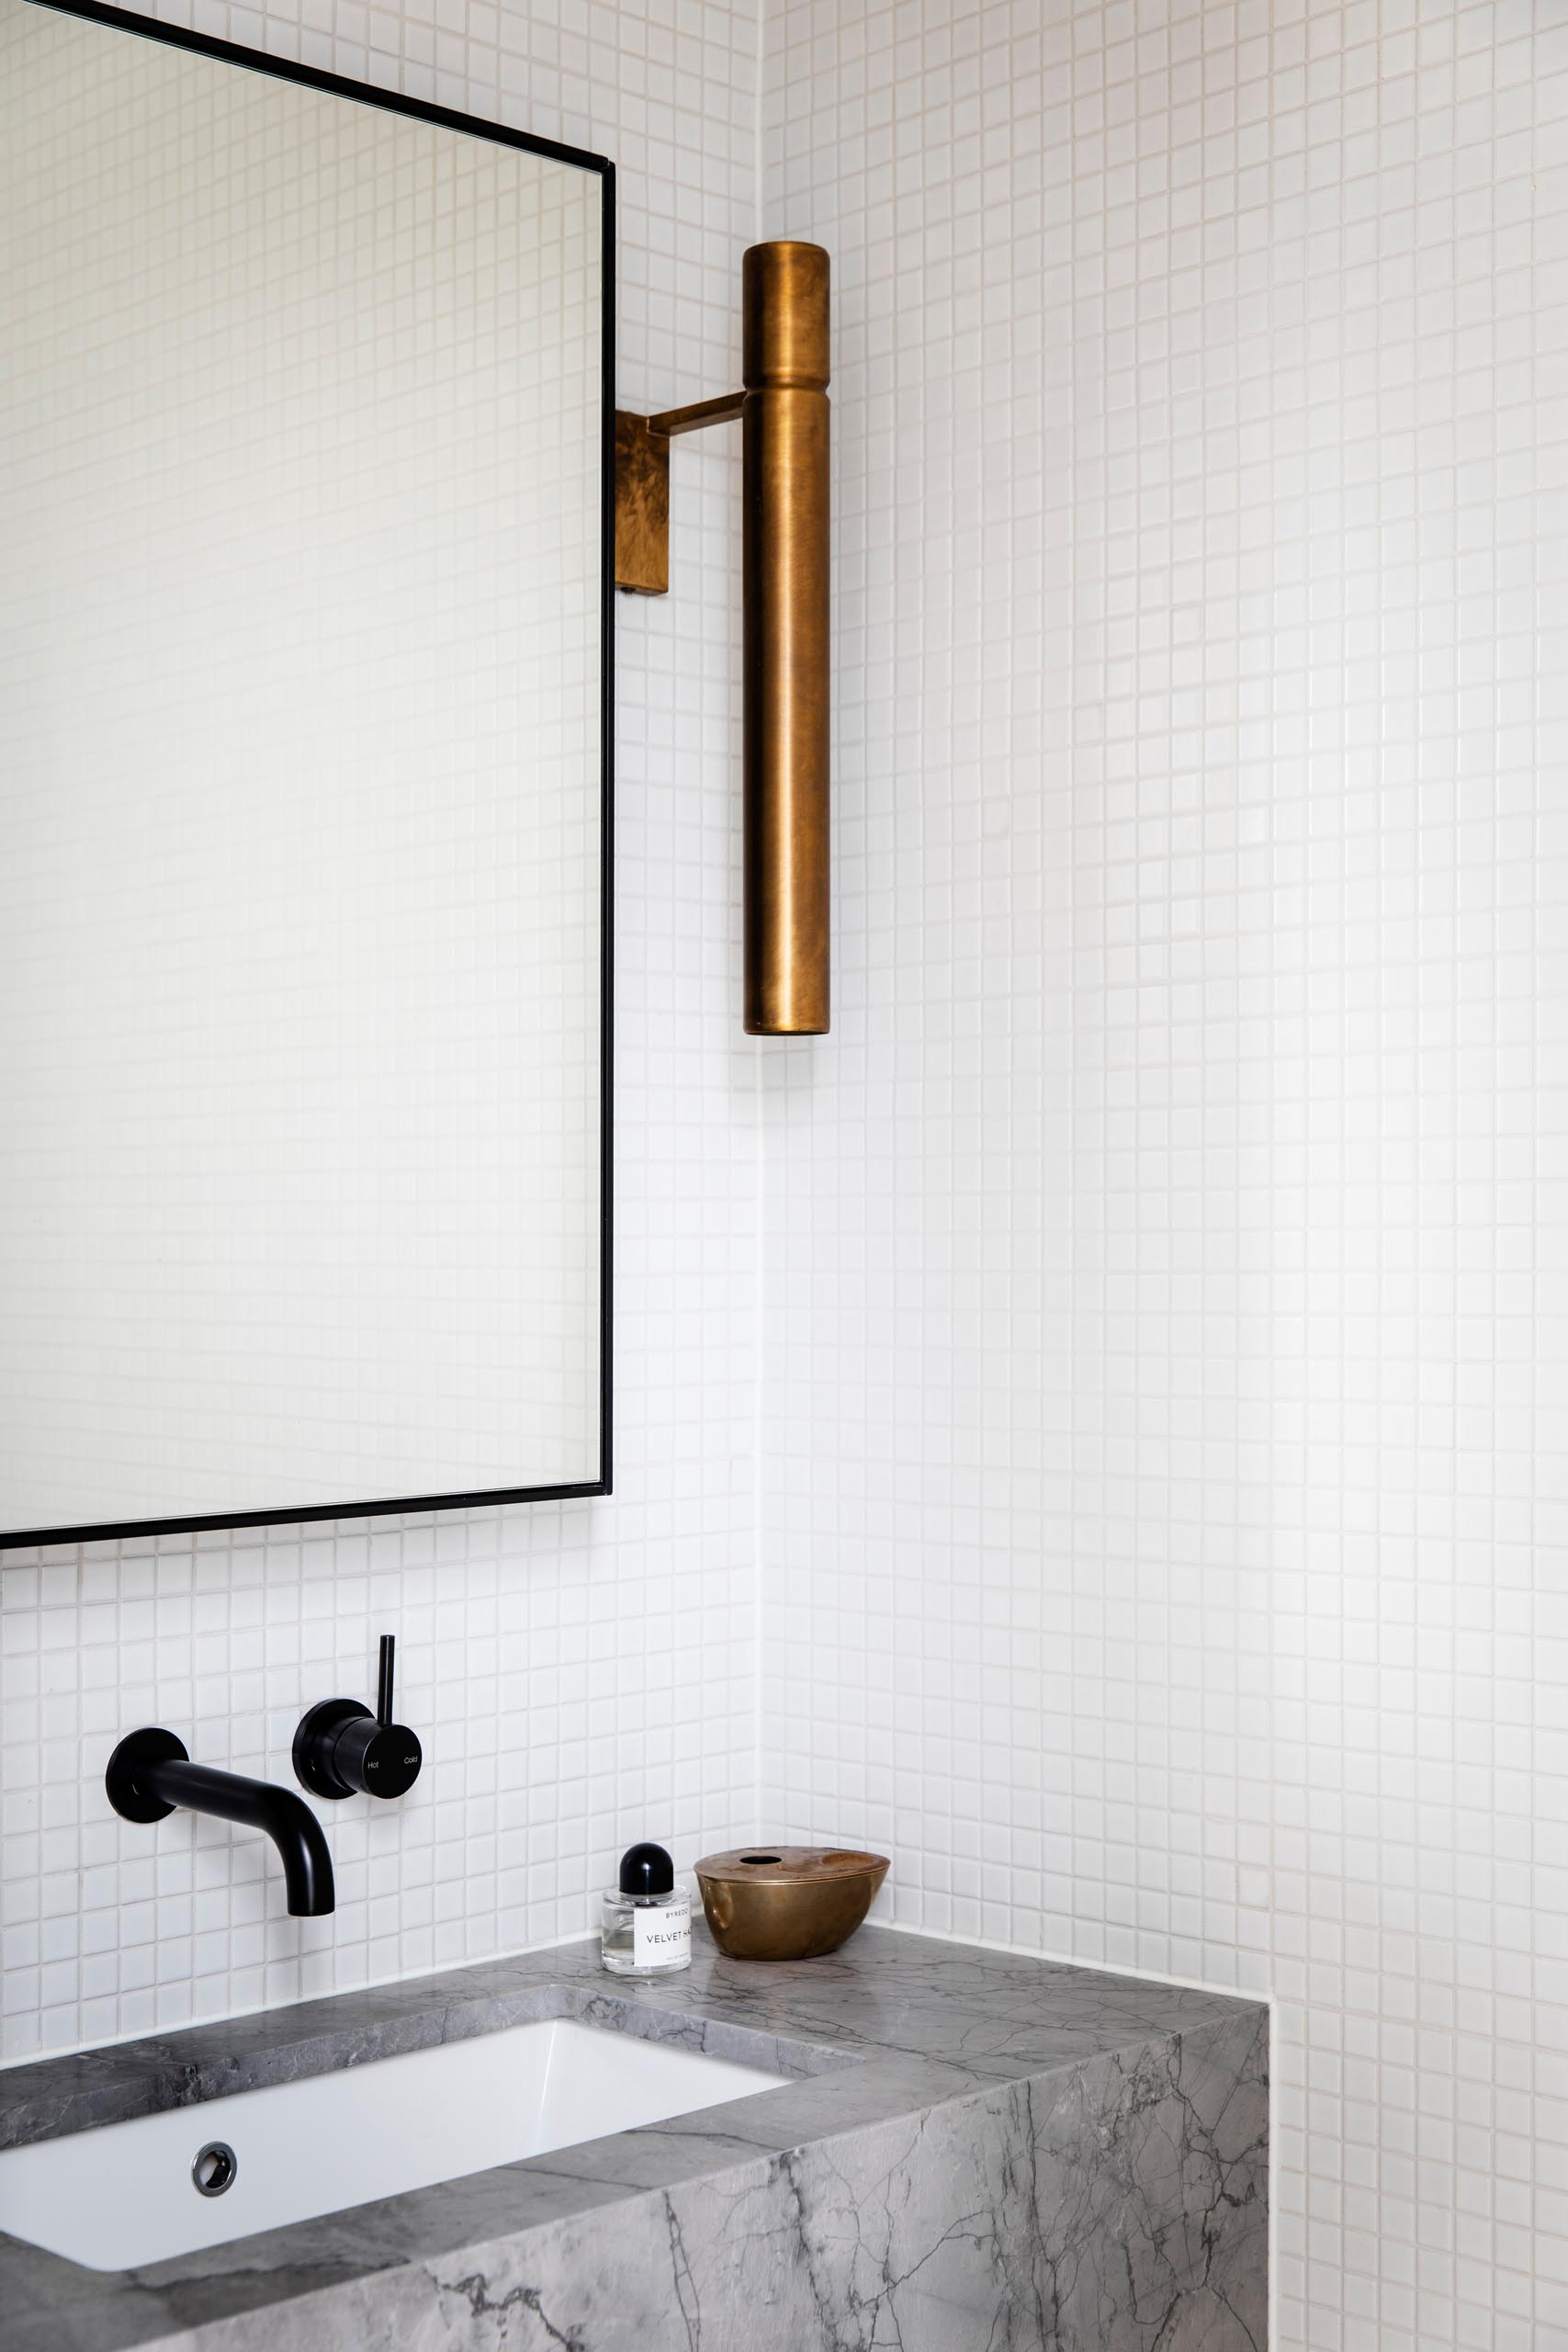 This powder room also includes the small square tiles, however a gray stone vanity and black mirror frame add a contrasting element, and a brass light fixture adds a metallic accent.